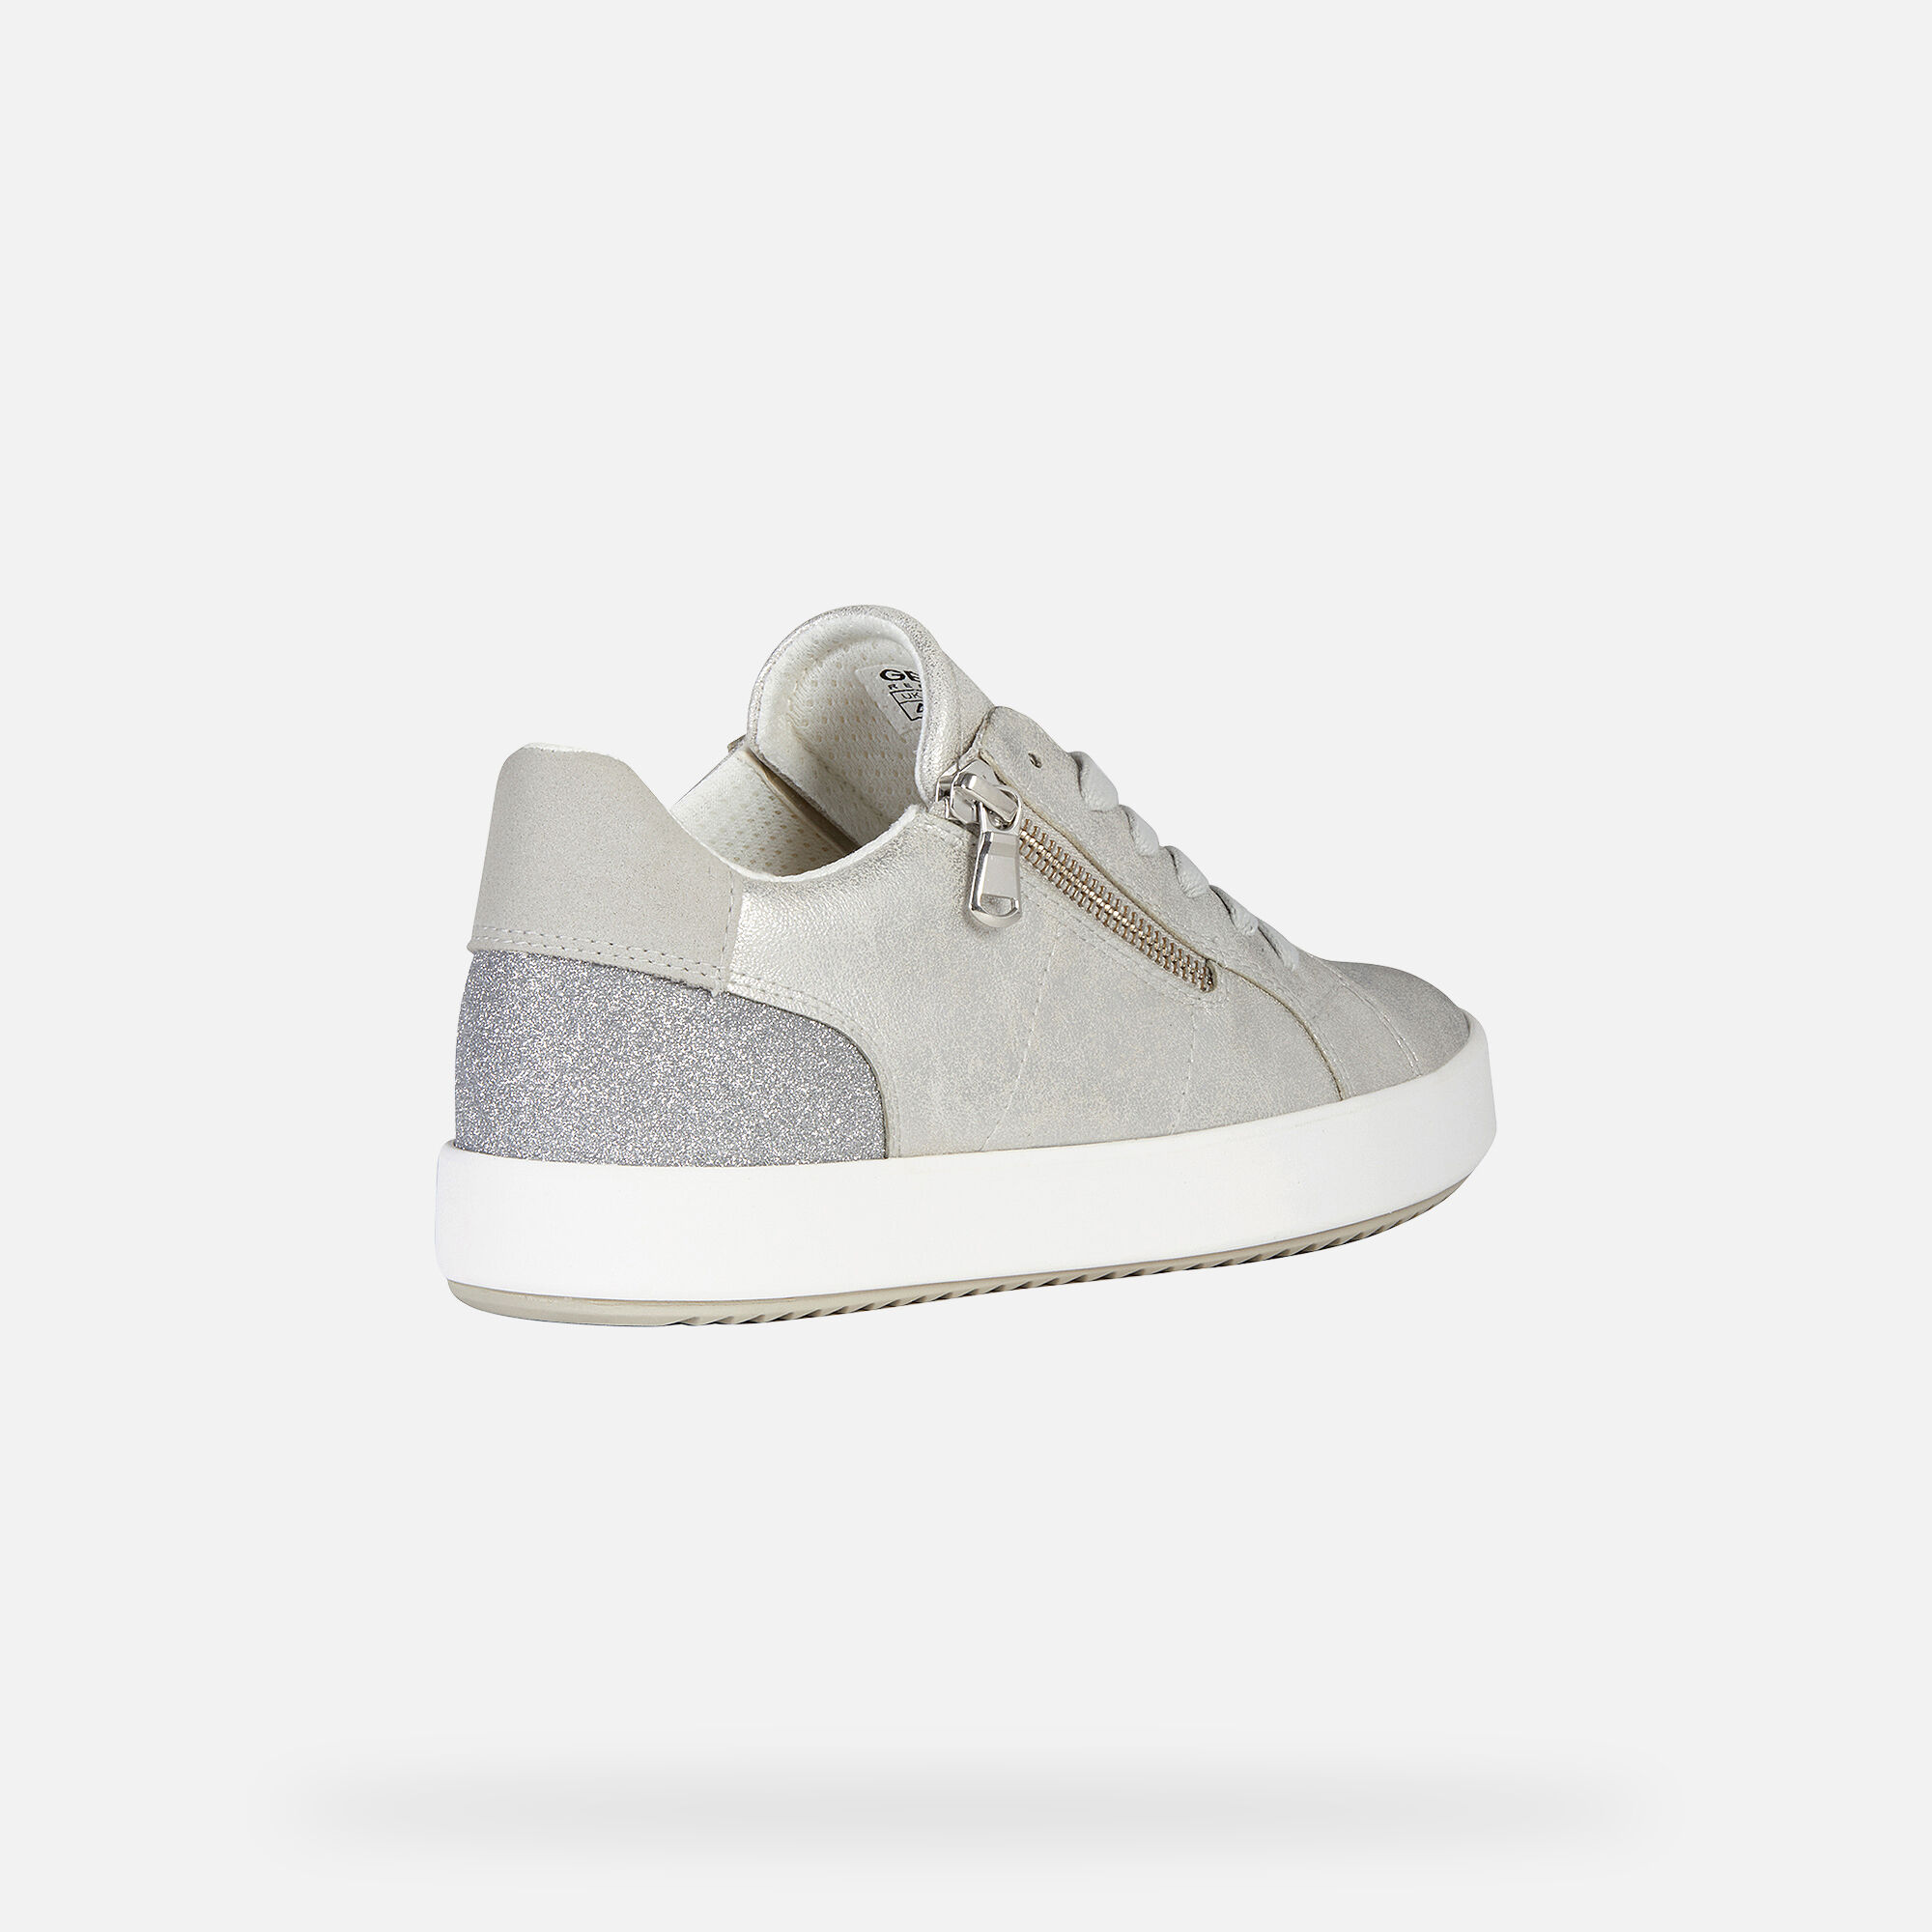 Geox Blomiee Trainers Women White Shoes Entire Collection